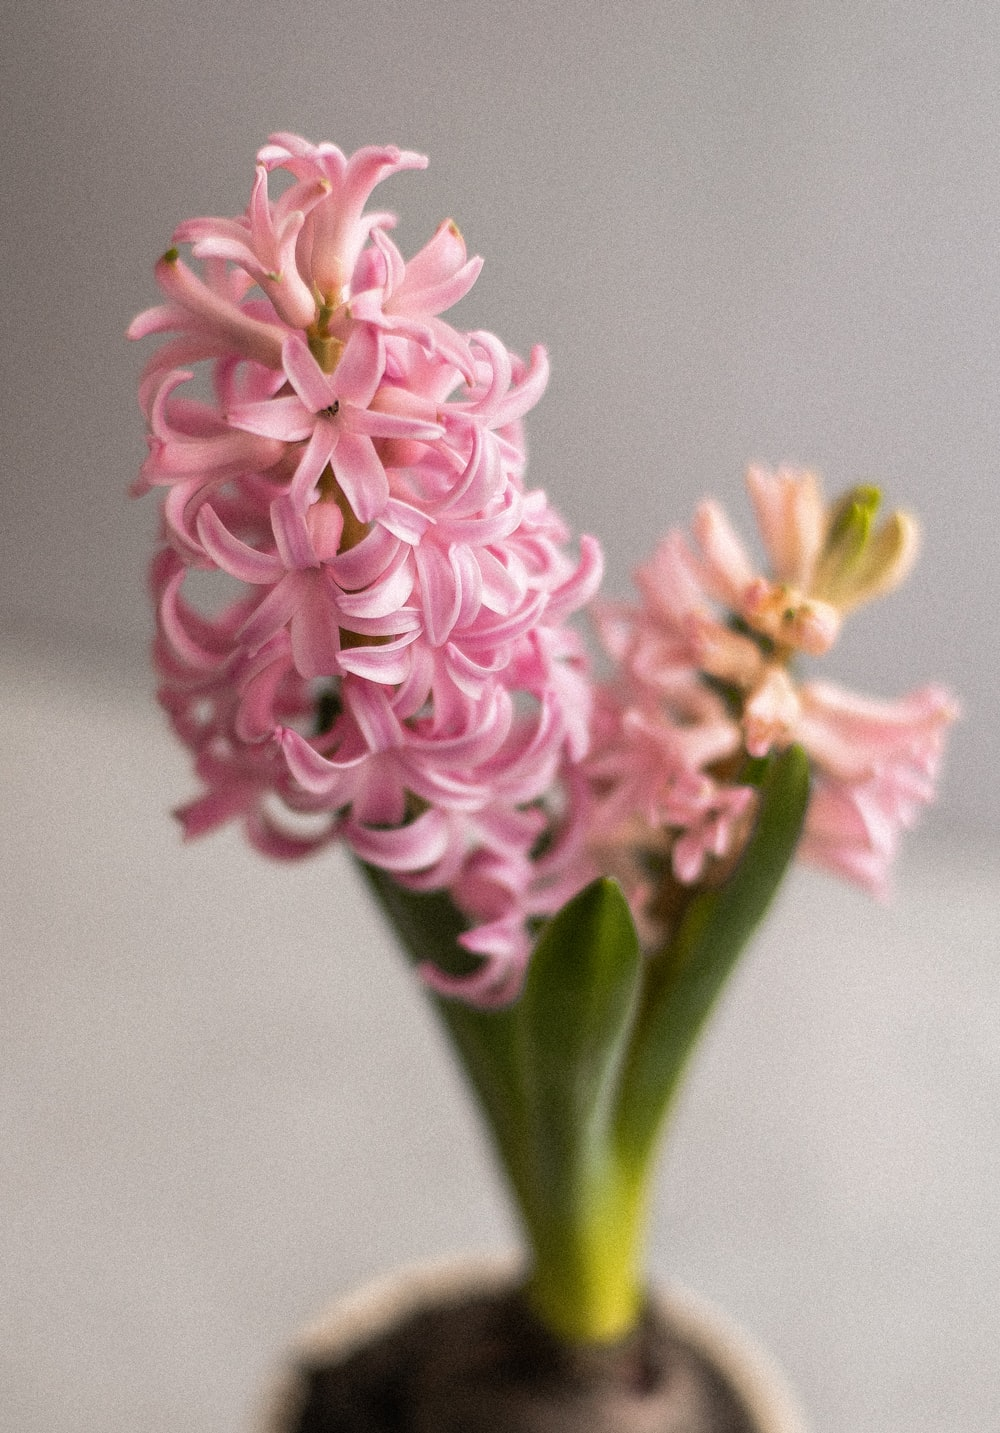 pink and white flower in close up photography